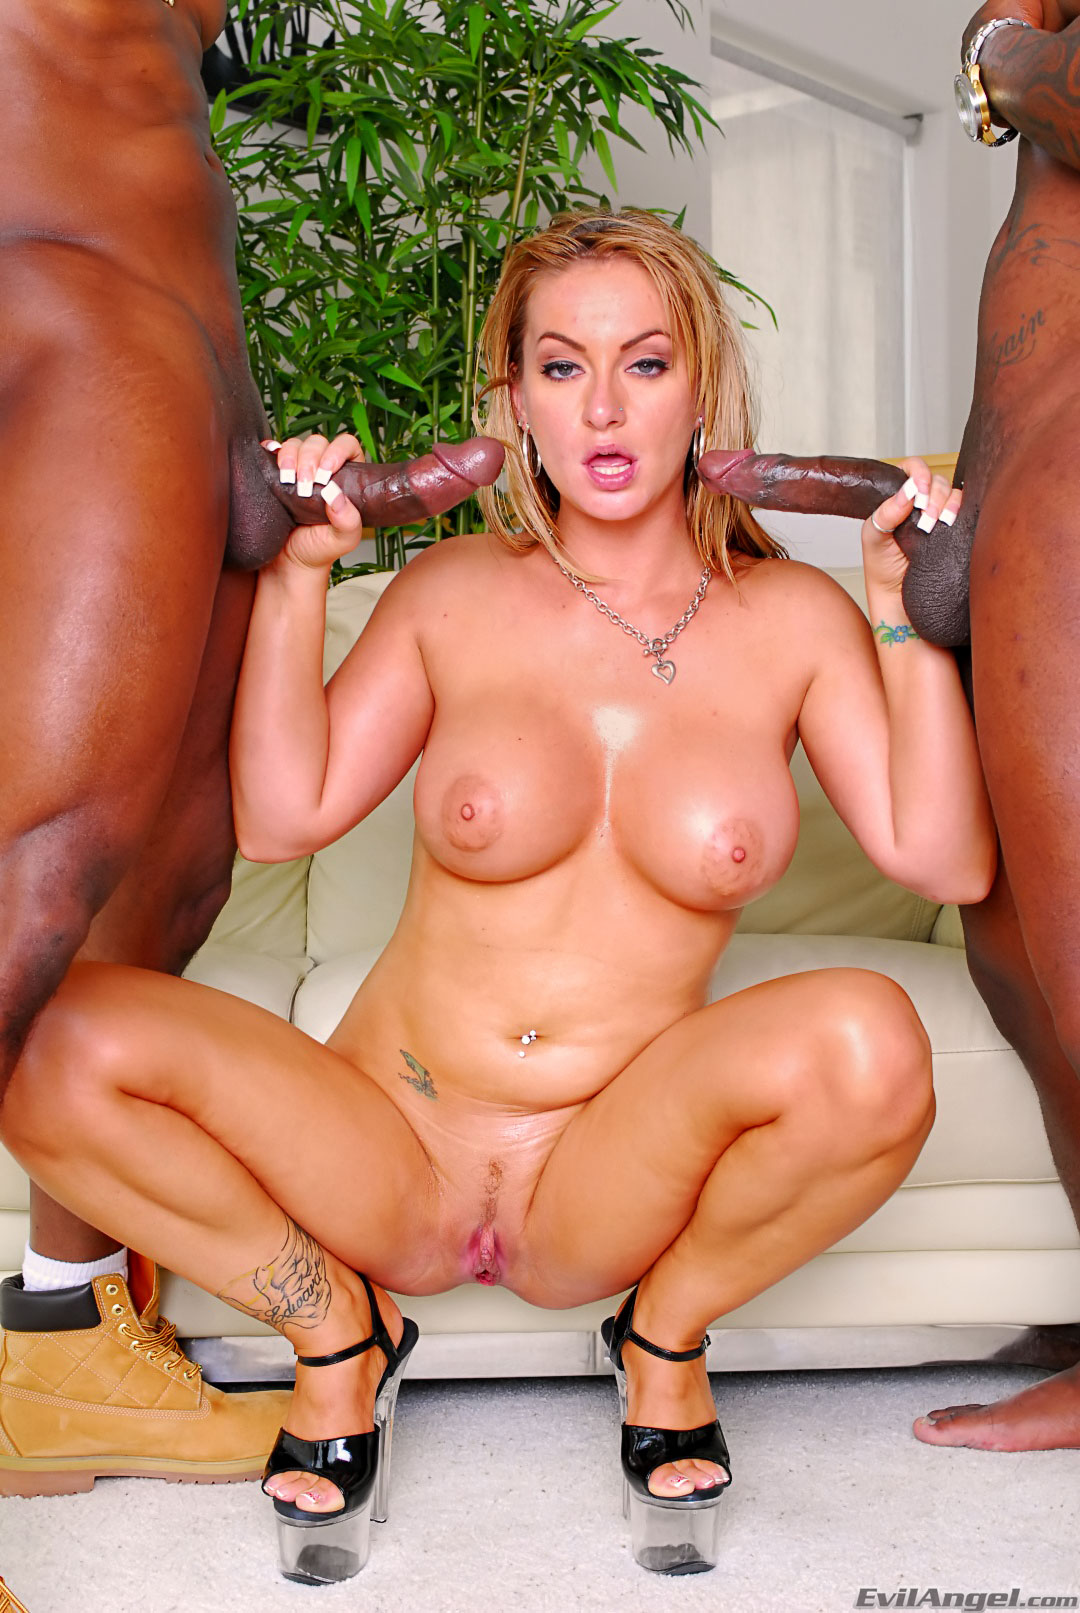 Dru barrymore and samantha sterlyng - 3 part 6